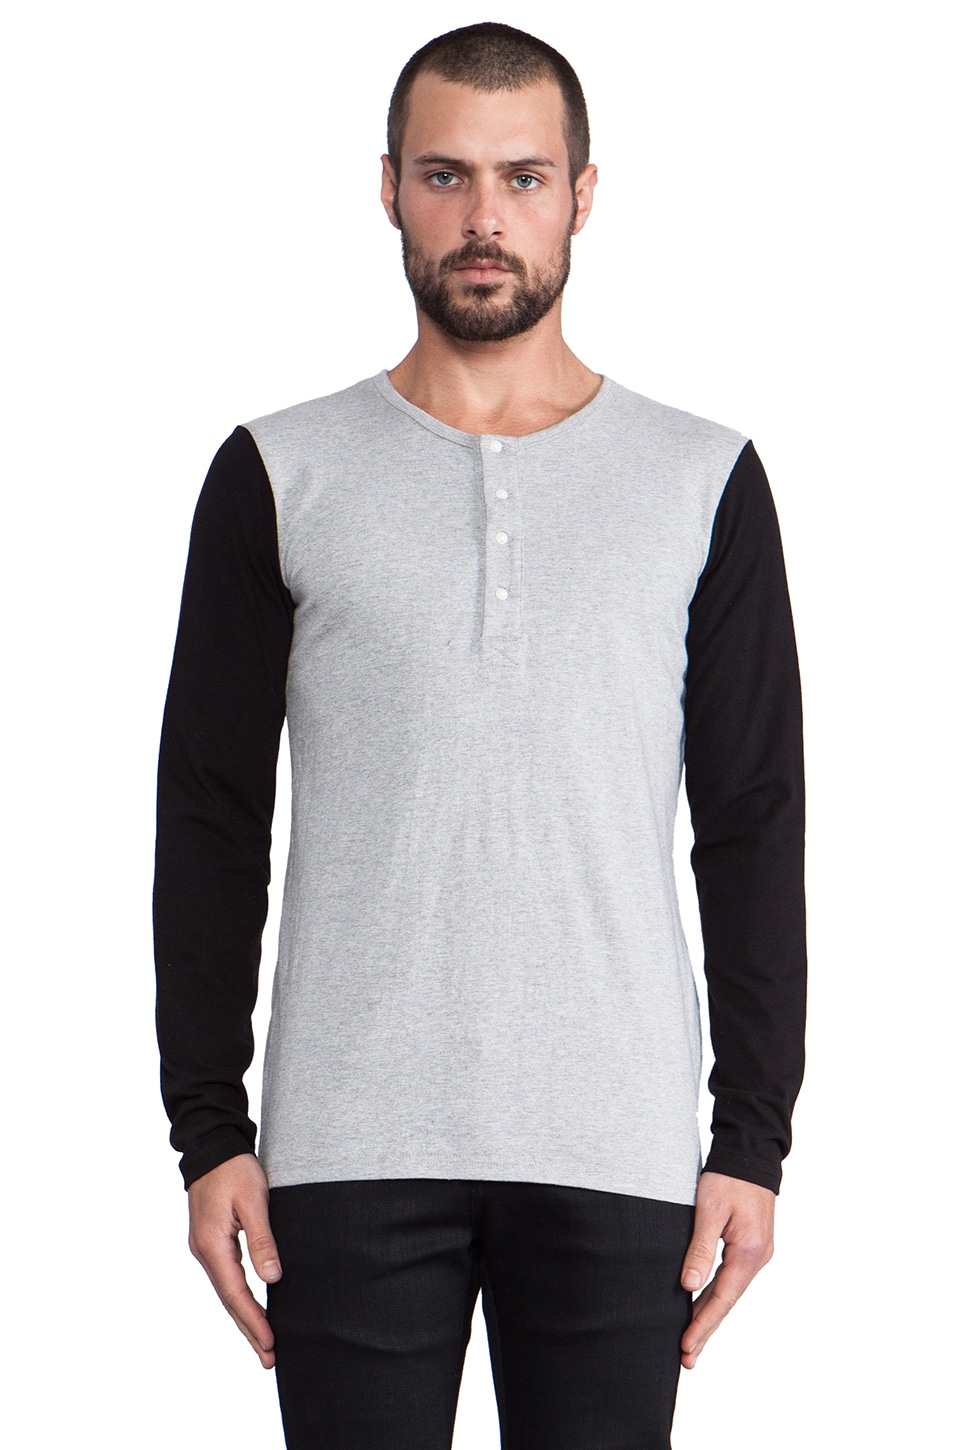 Shades of Grey by Micah Cohen L/S Henley in Heather Grey/Black